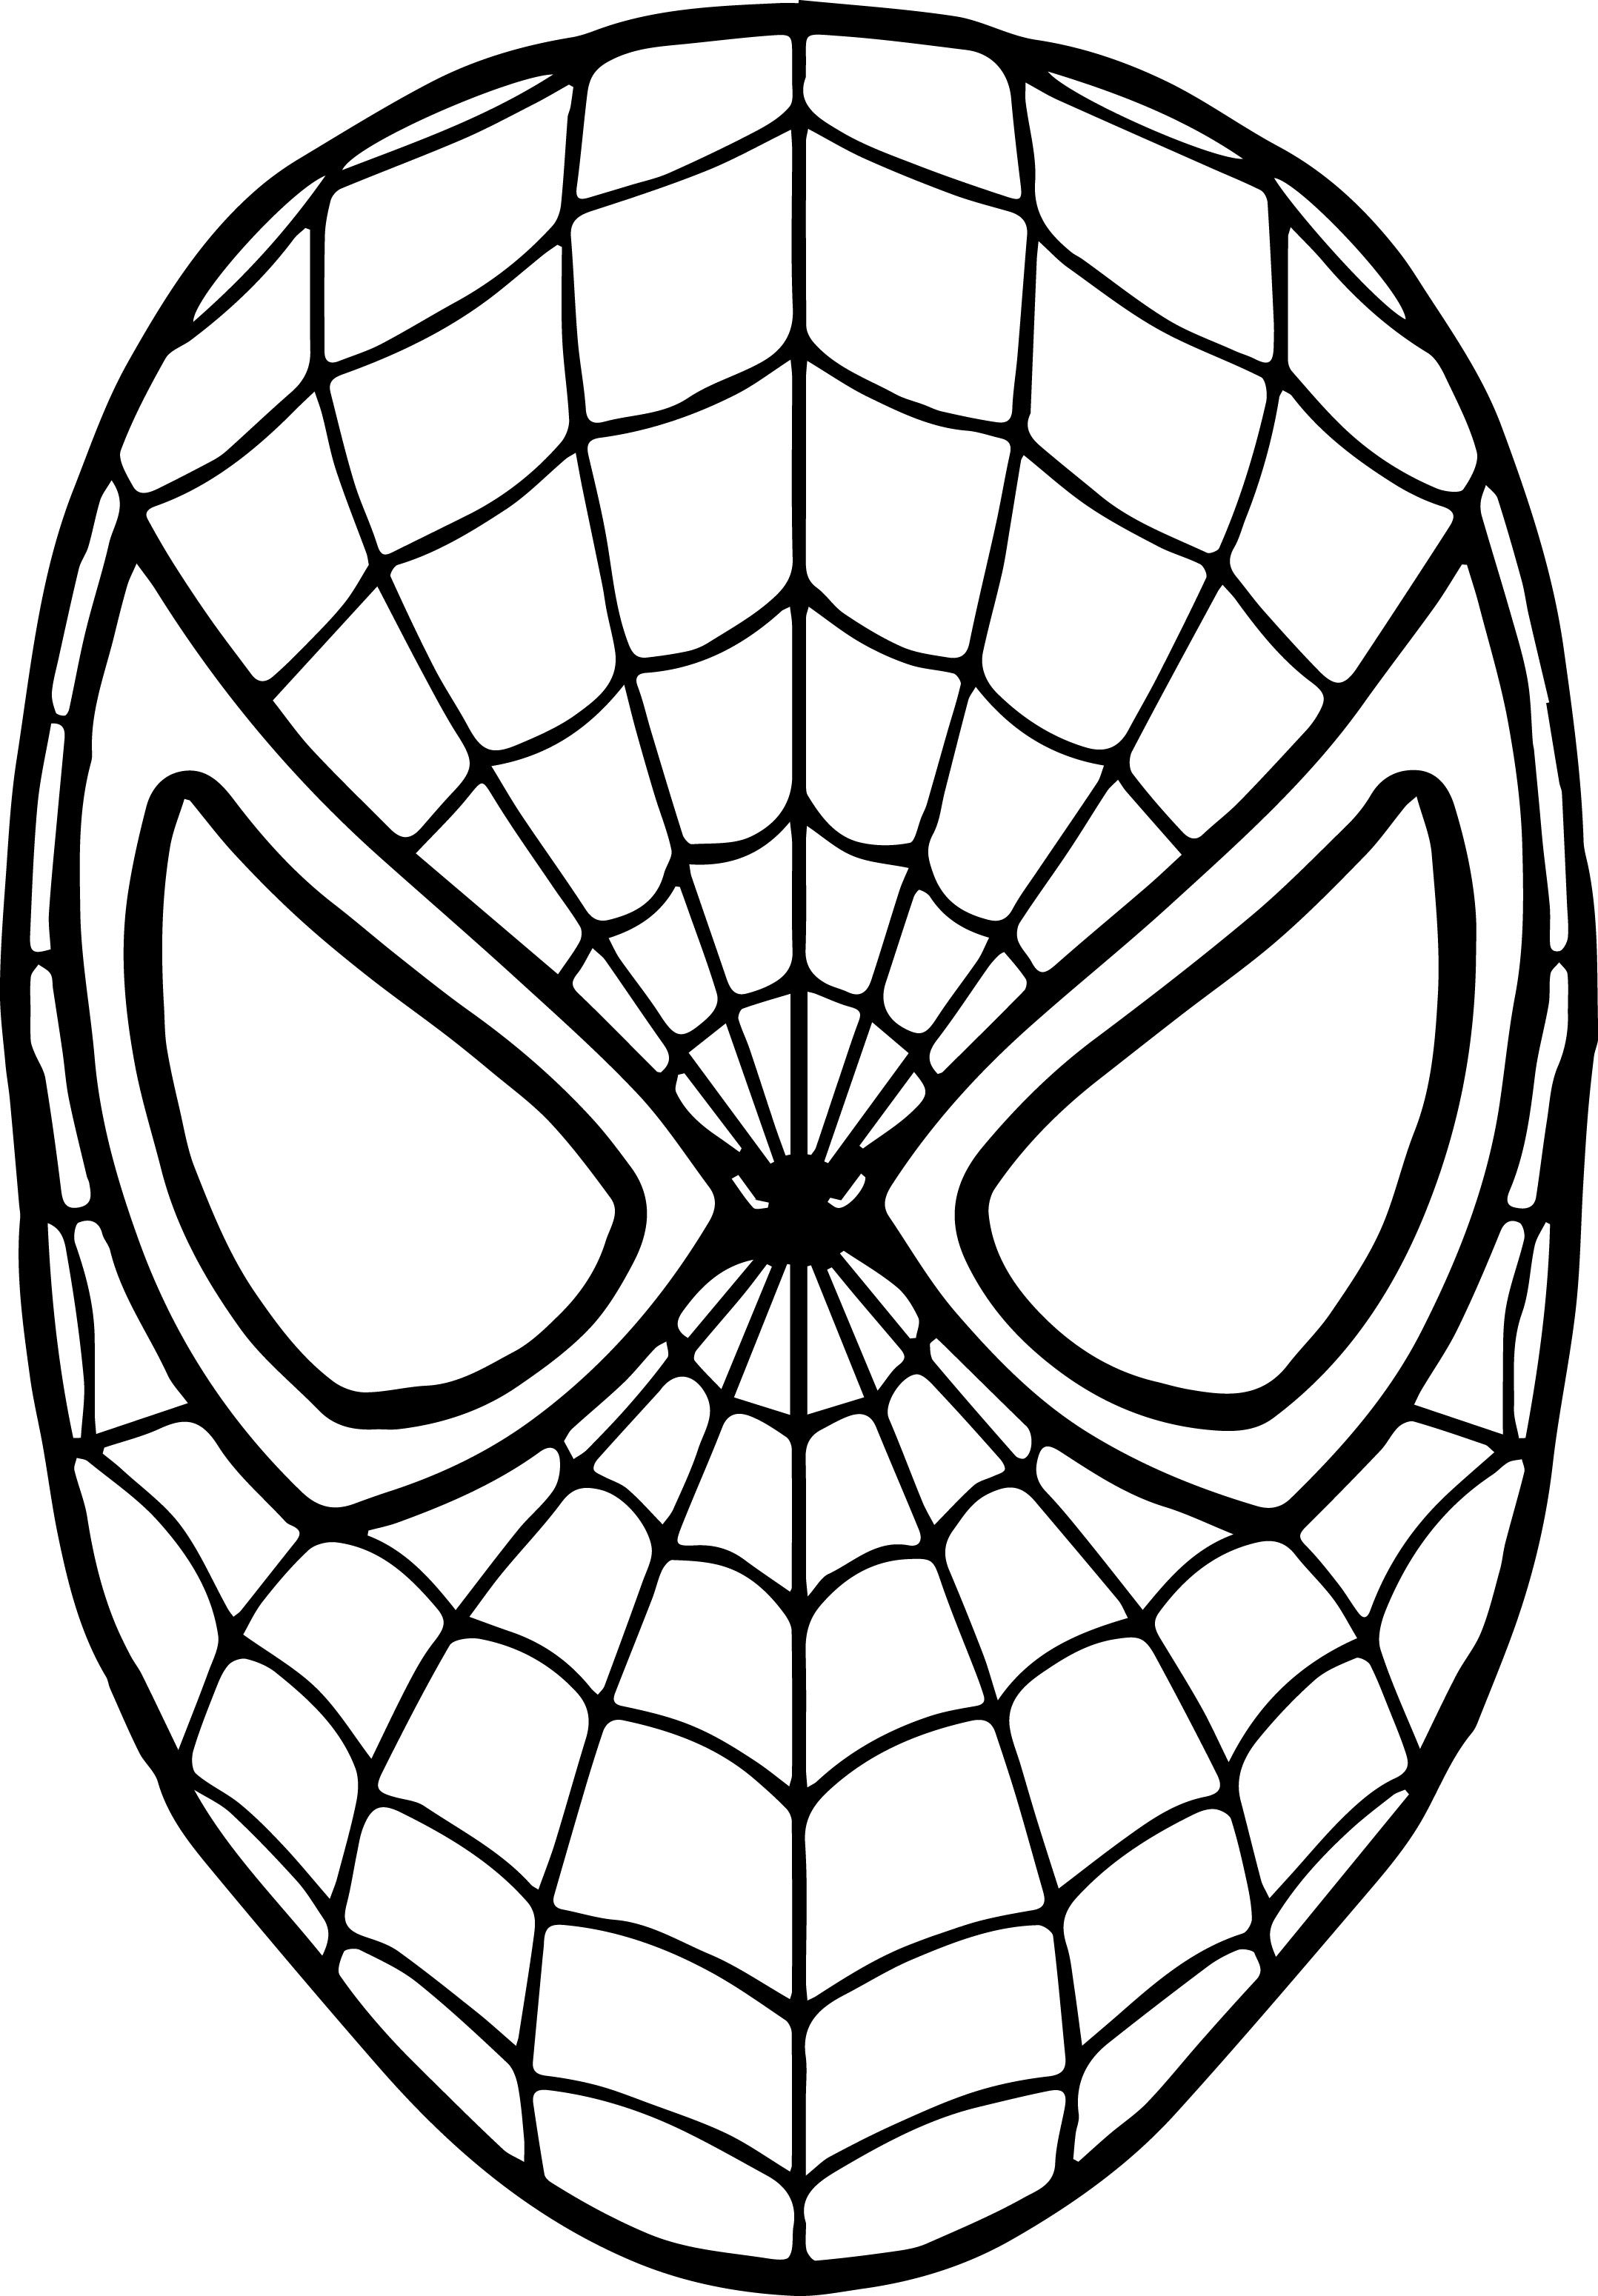 spider man coloring spiderman coloring pages spiderman coloring spiderman man coloring spider